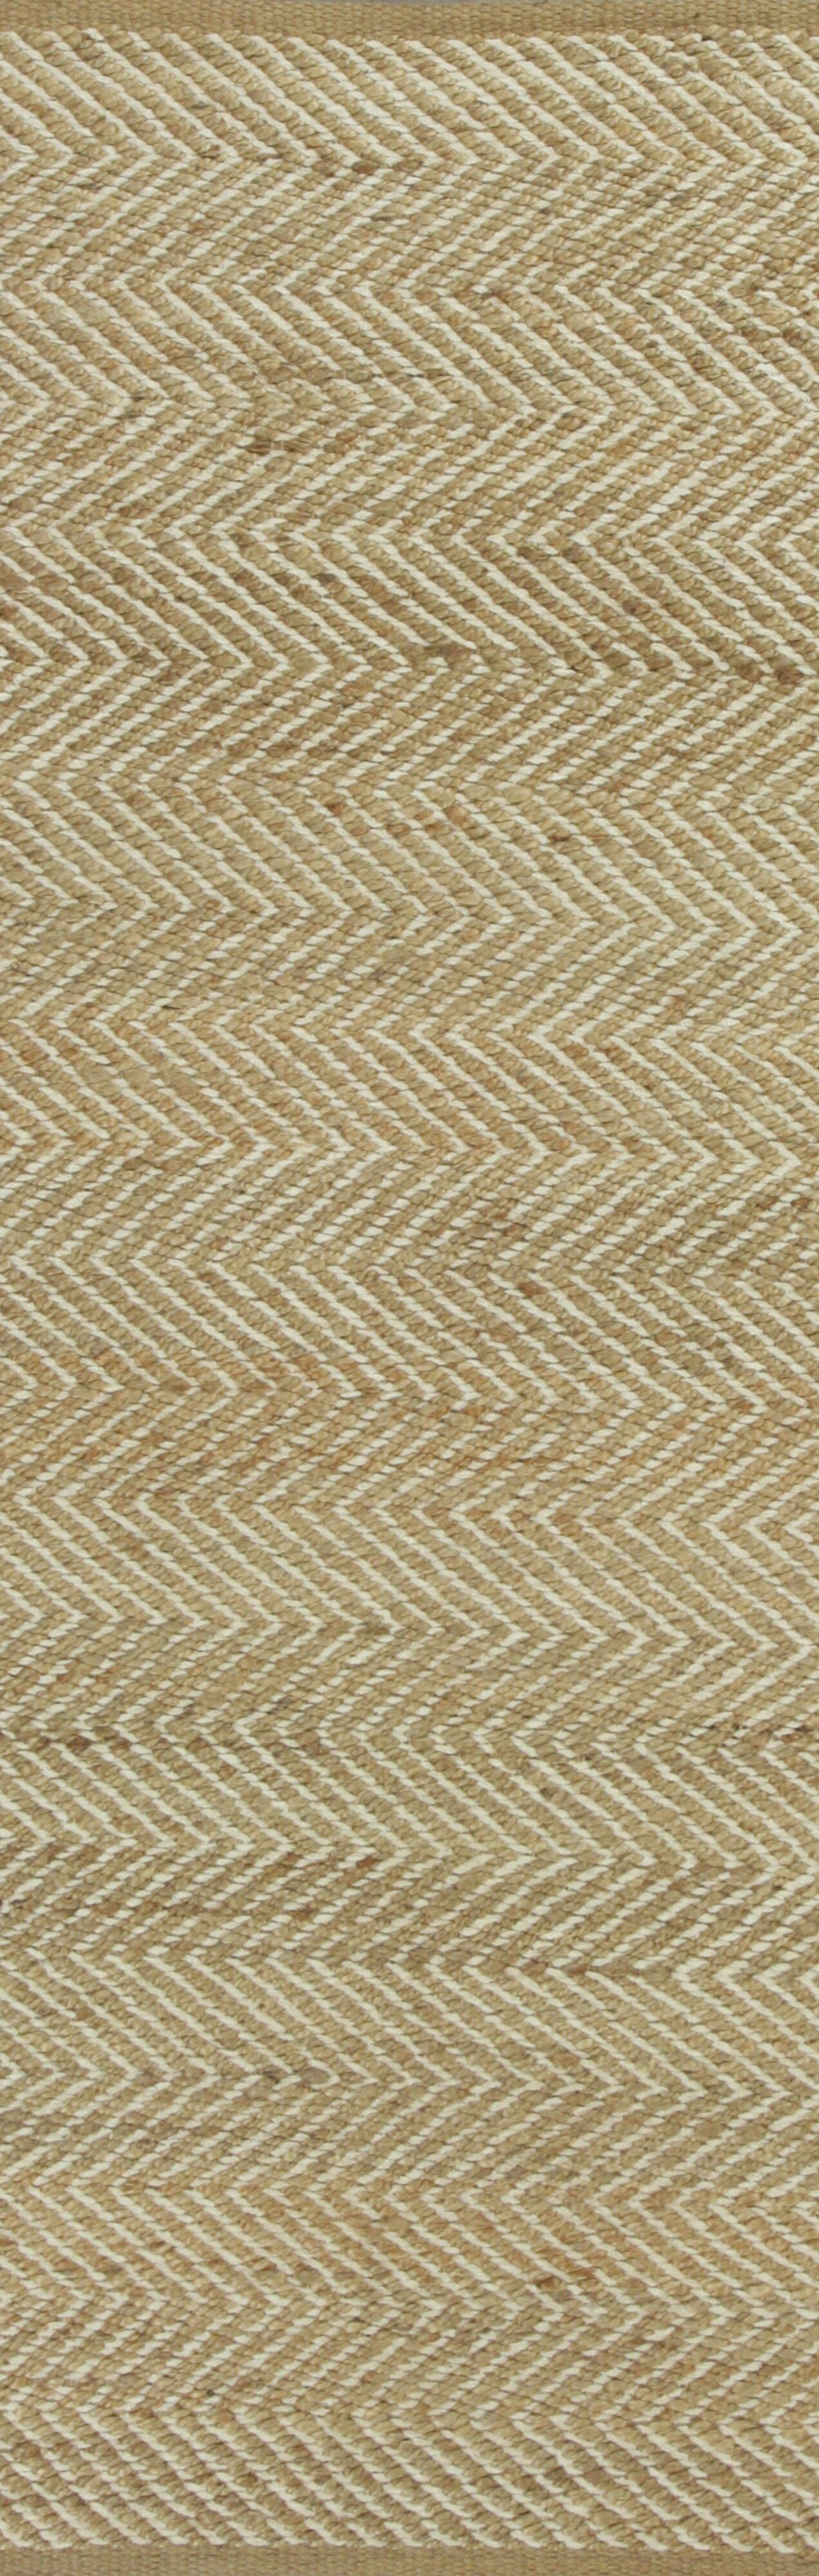 Lenore Hand-Woven Area Rug Rug Size: 3'3